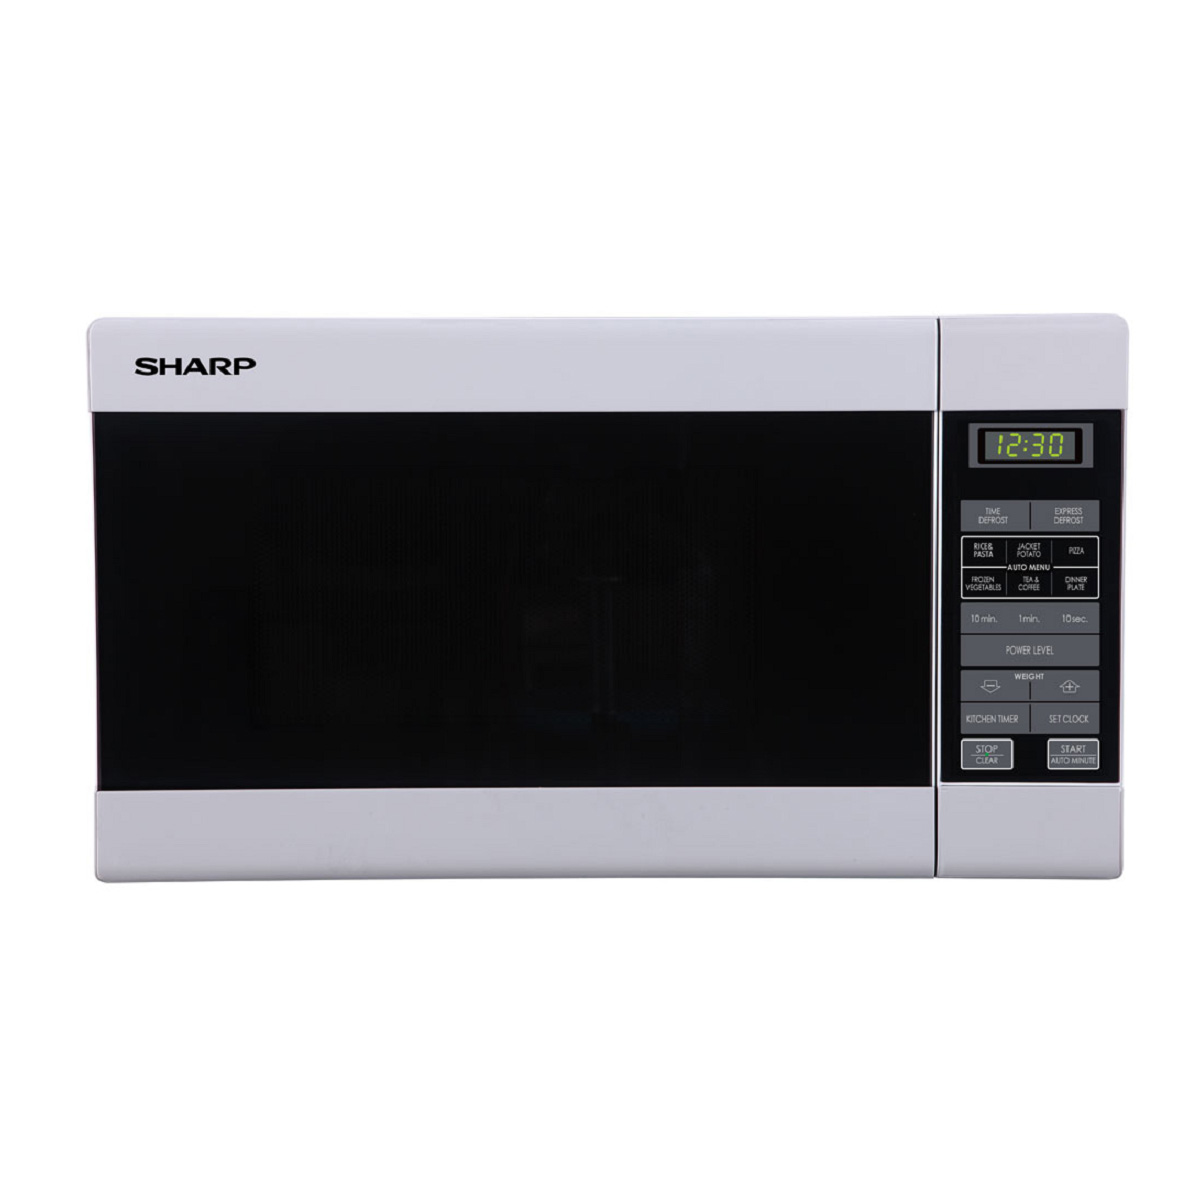 Sharp R210DW 20litres 750W Compact Microwave Oven 29373